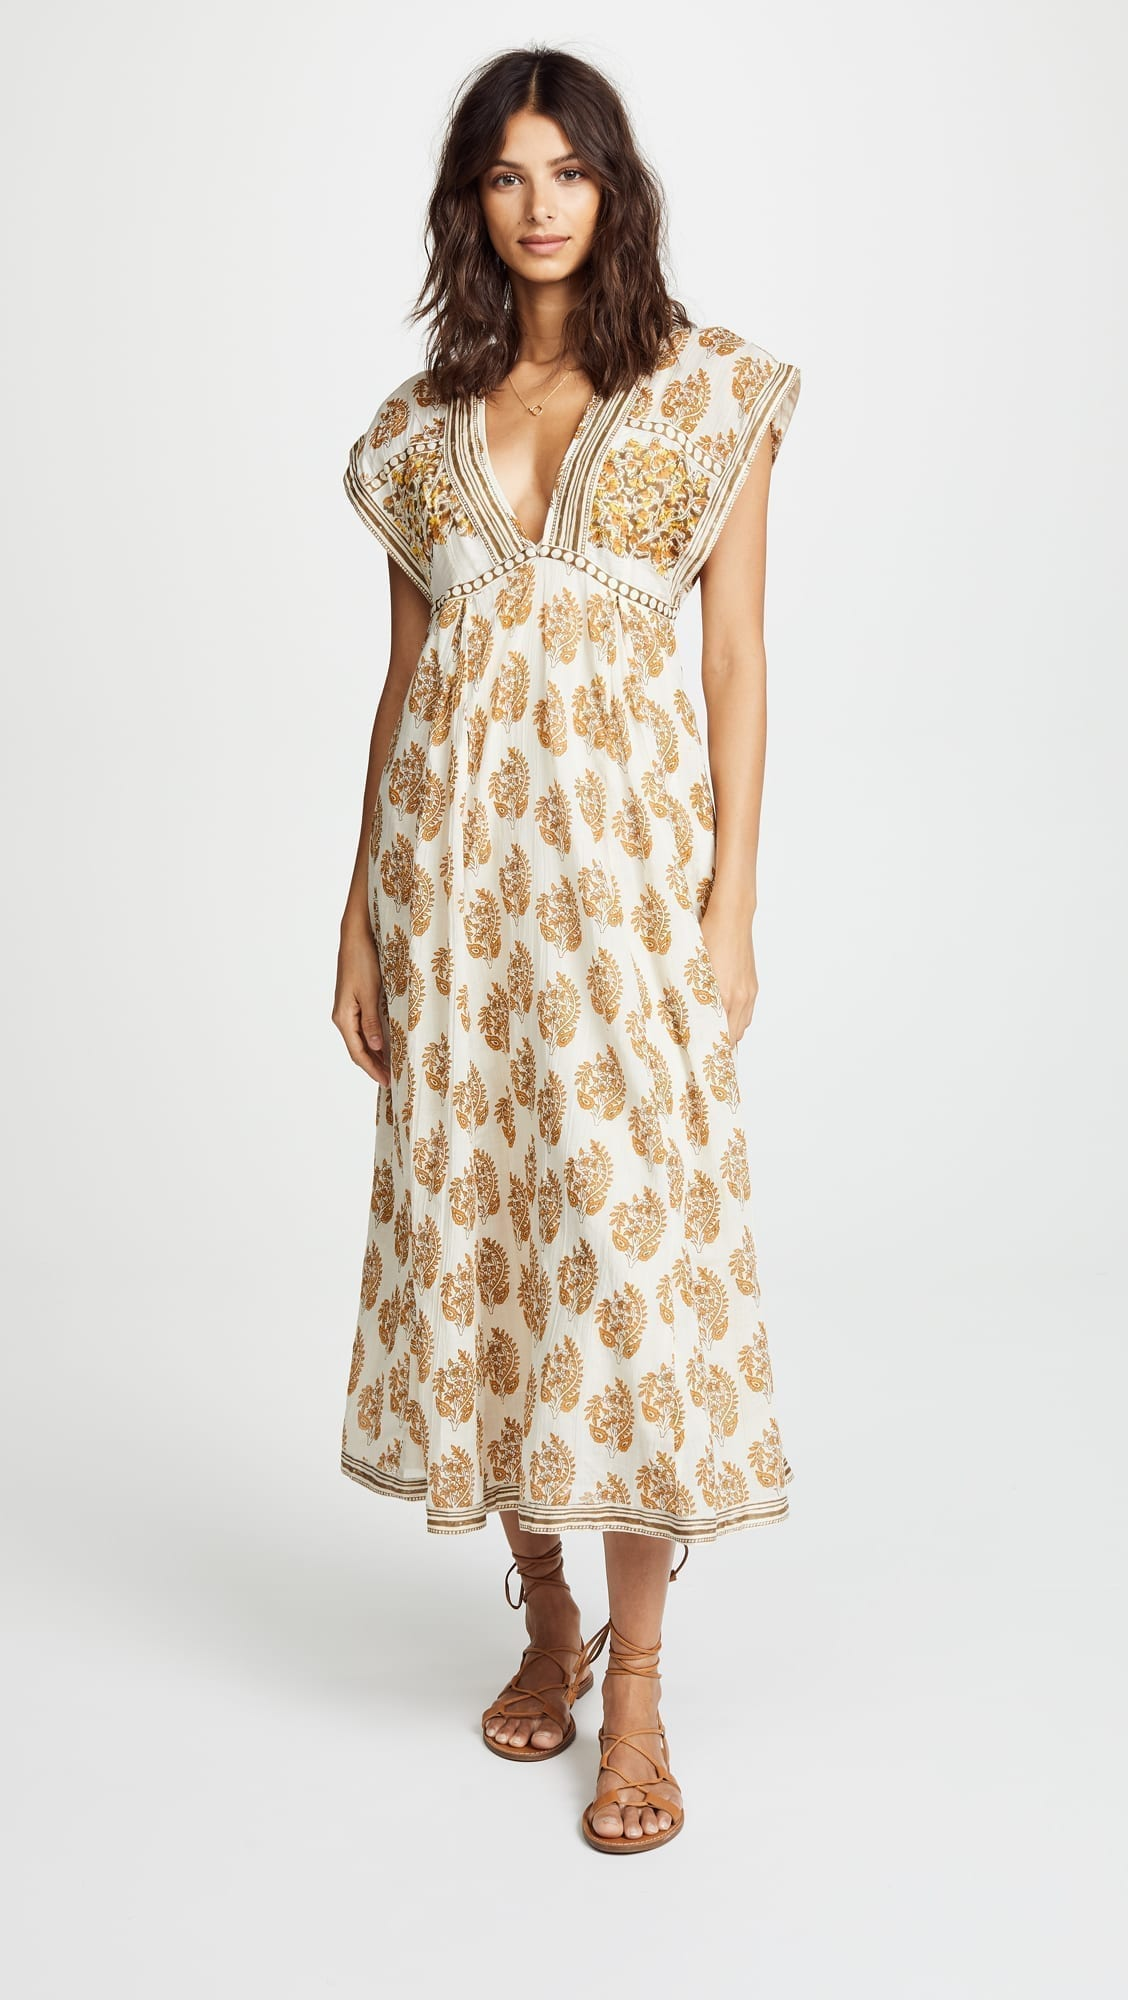 FREE PEOPLE Riakaa Pink / Floral Printed Dress - We Select Dresses